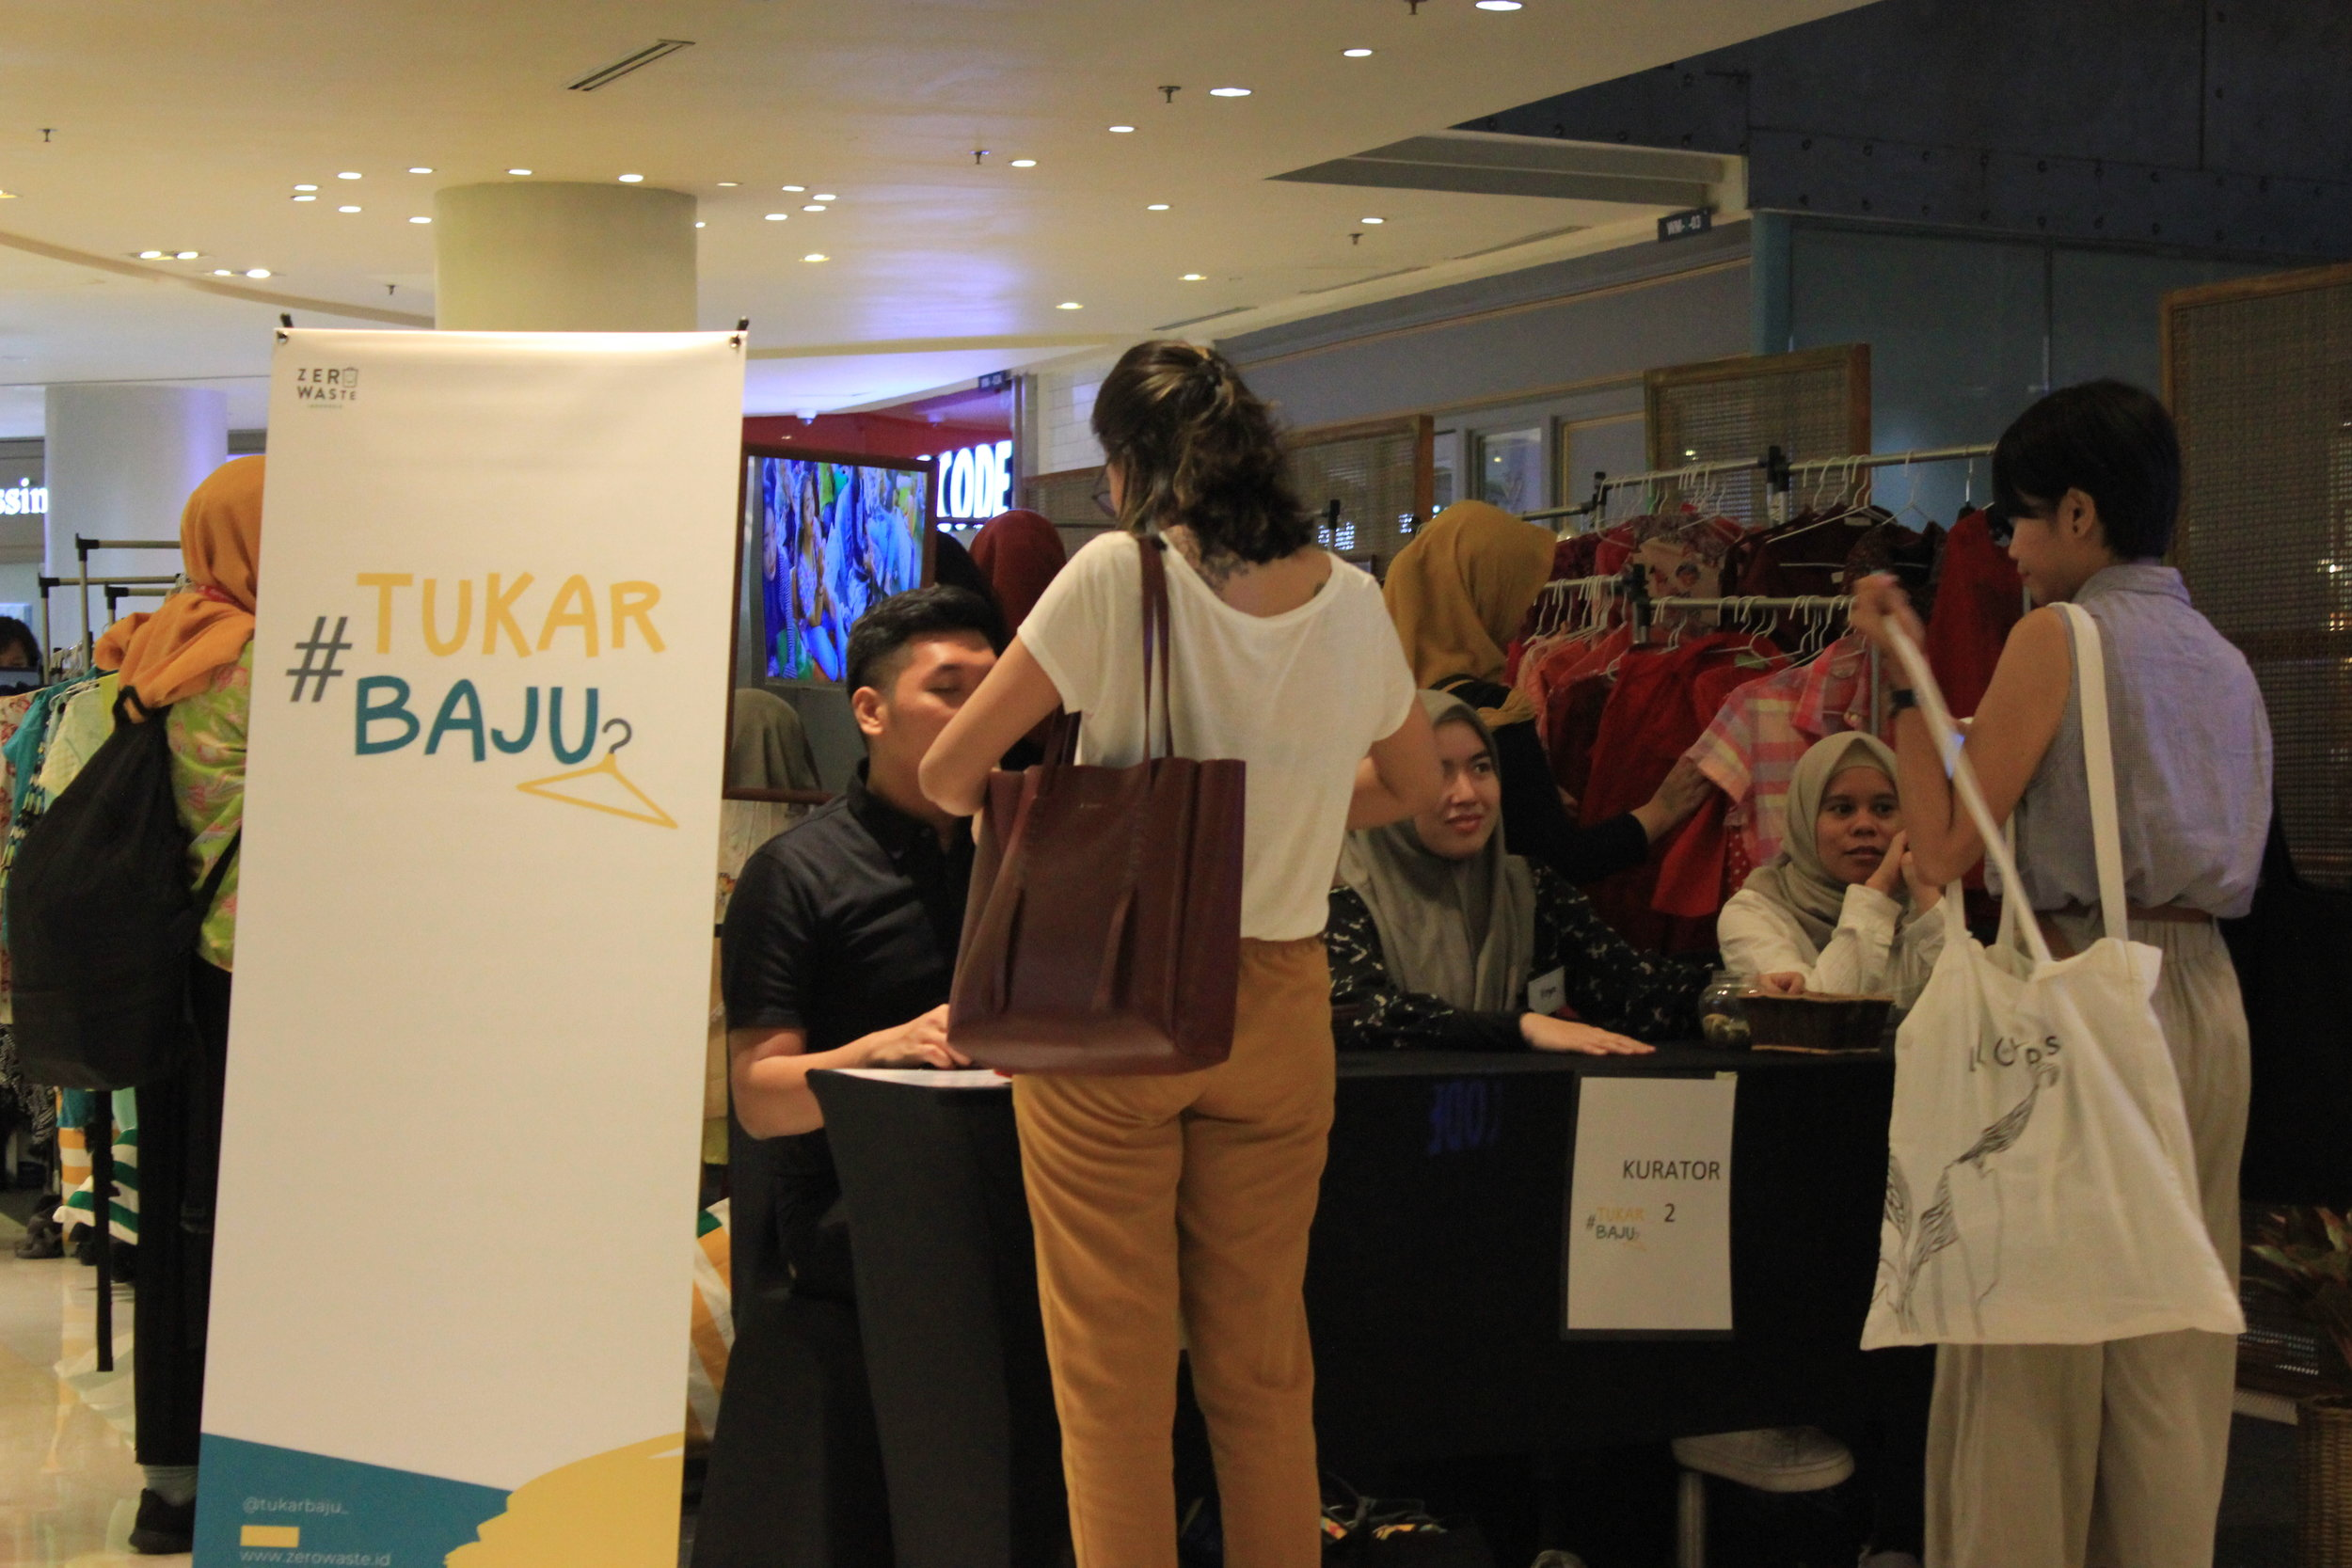 Clothes Swap by Tukar Baju during the GAYA event launch (Image by: ZeroWaste Indonesia)